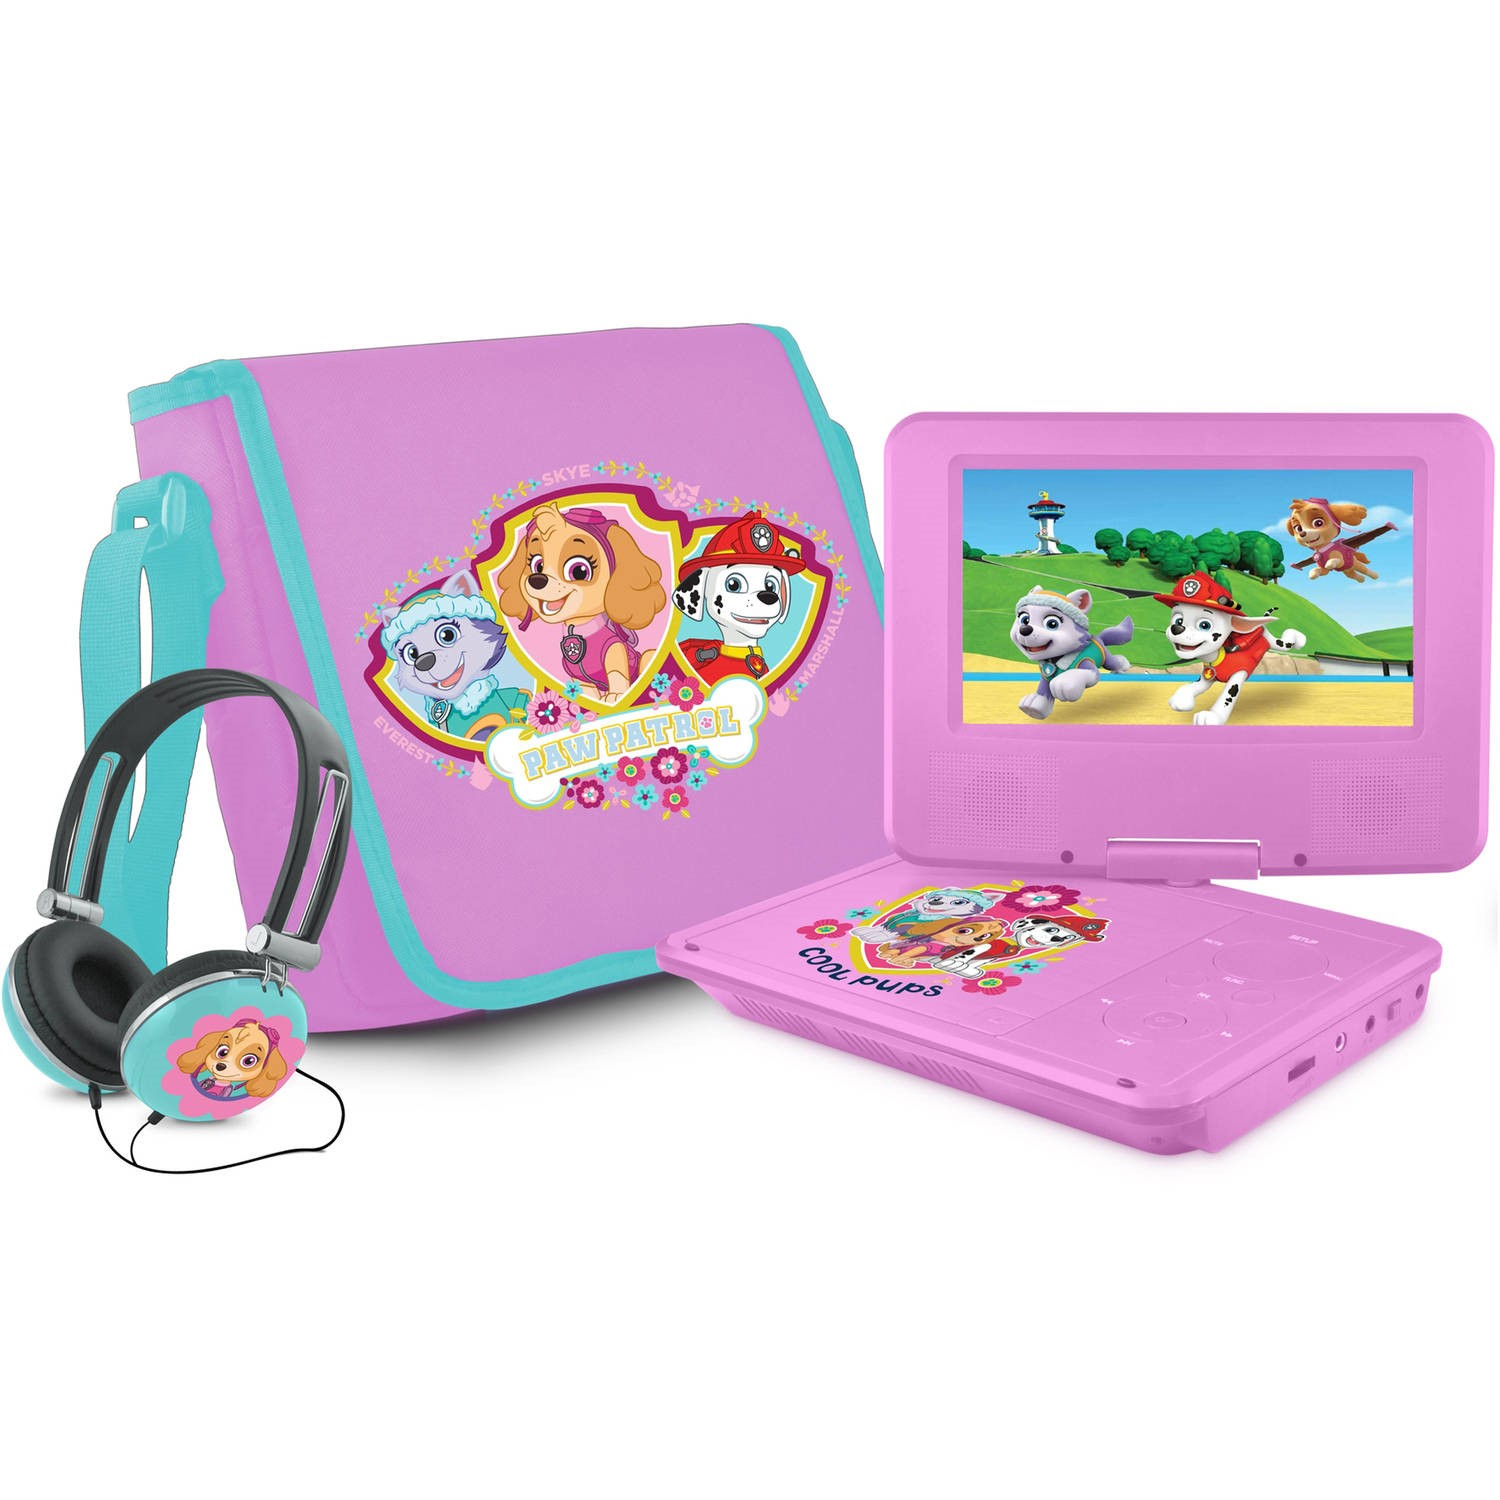 """Paw patrol 7"""" portable dvd player with carrying bag and headphones, pink"""